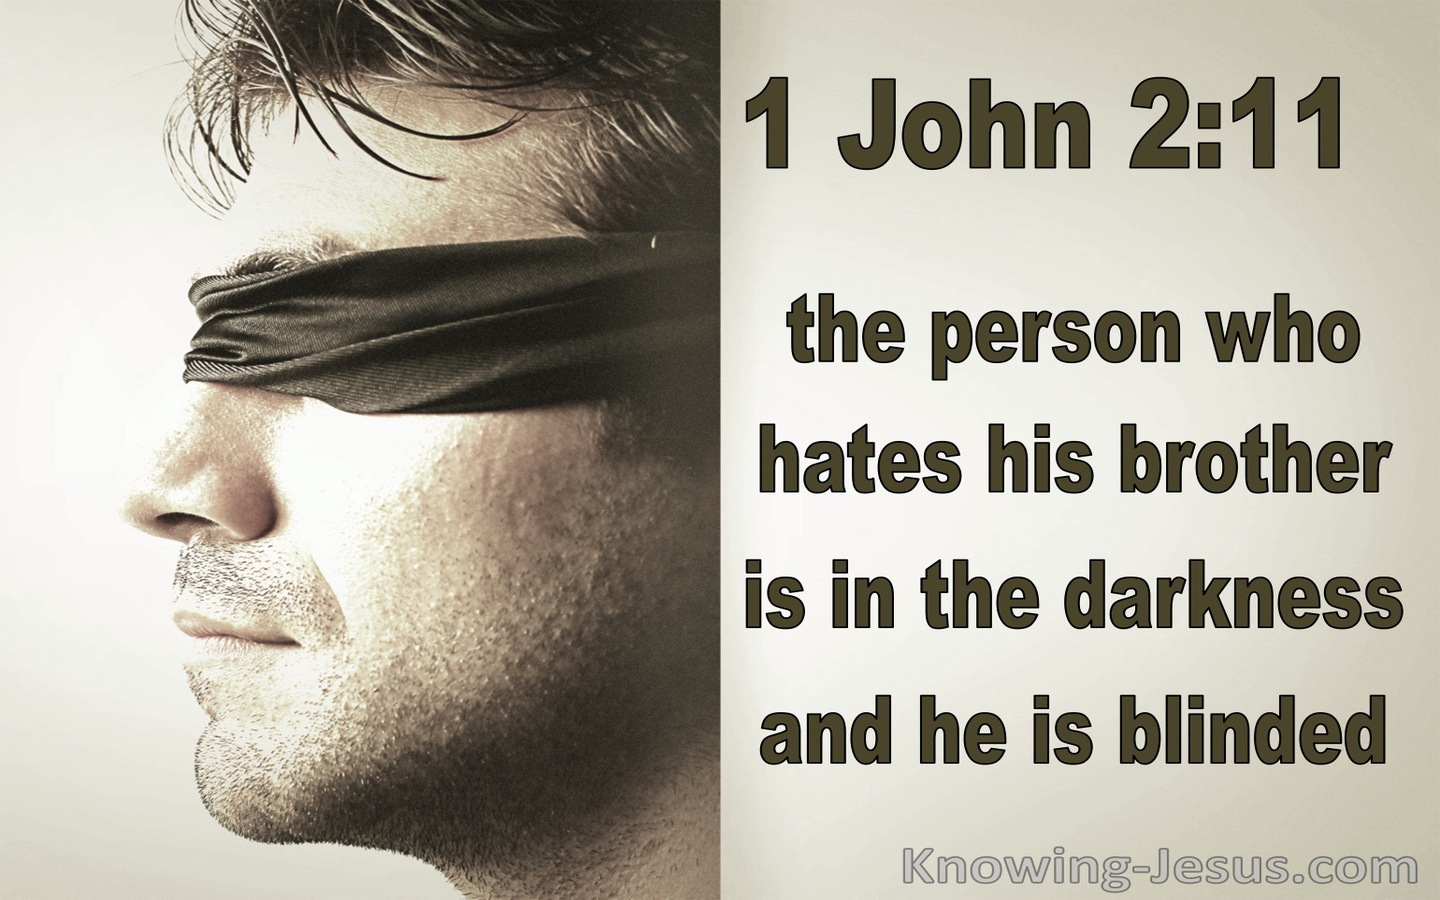 1 John 2:11 The Darkness Has Blinded His Eyes (brown)